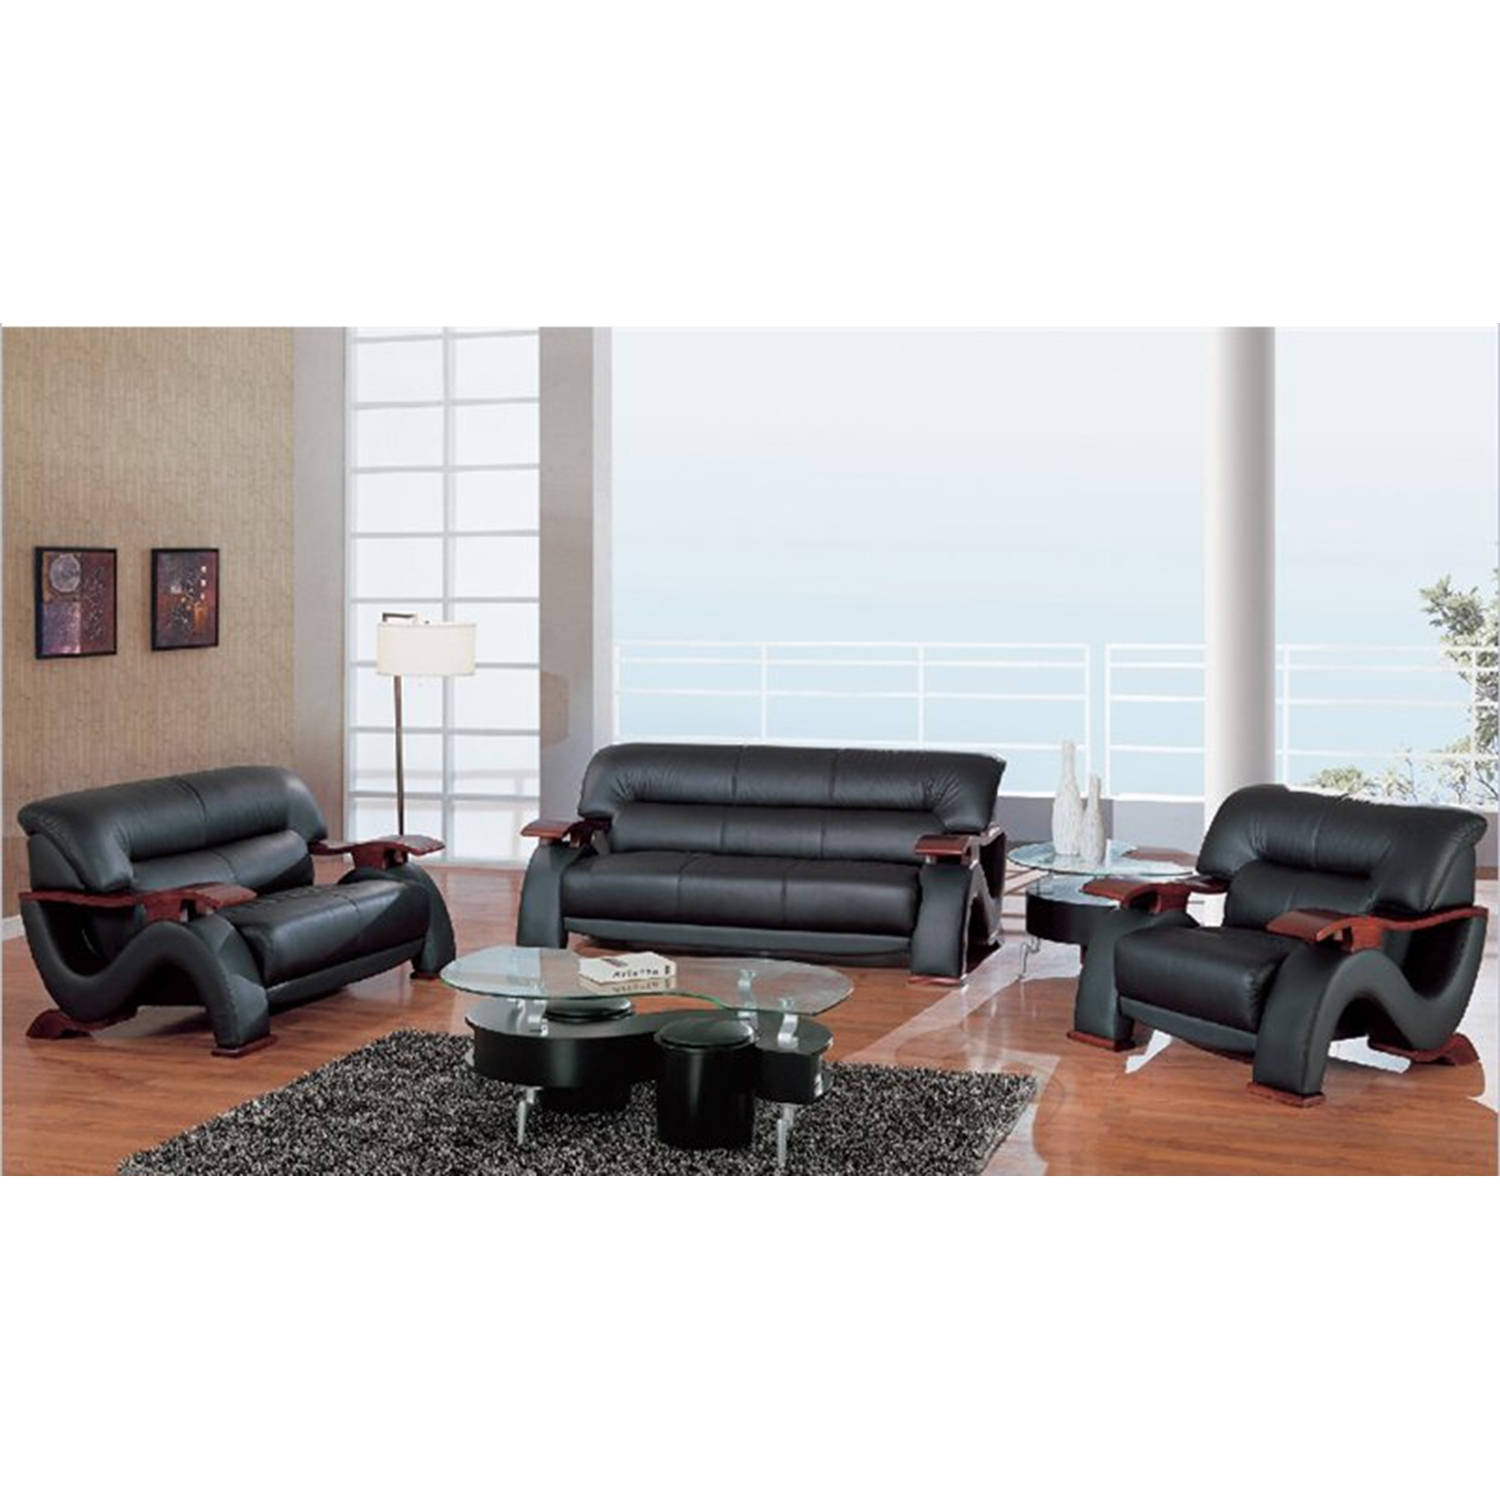 Valerie Bonded Leather Sofa Set In Black With Mahogany Legs   GLO U2033 RV  ...